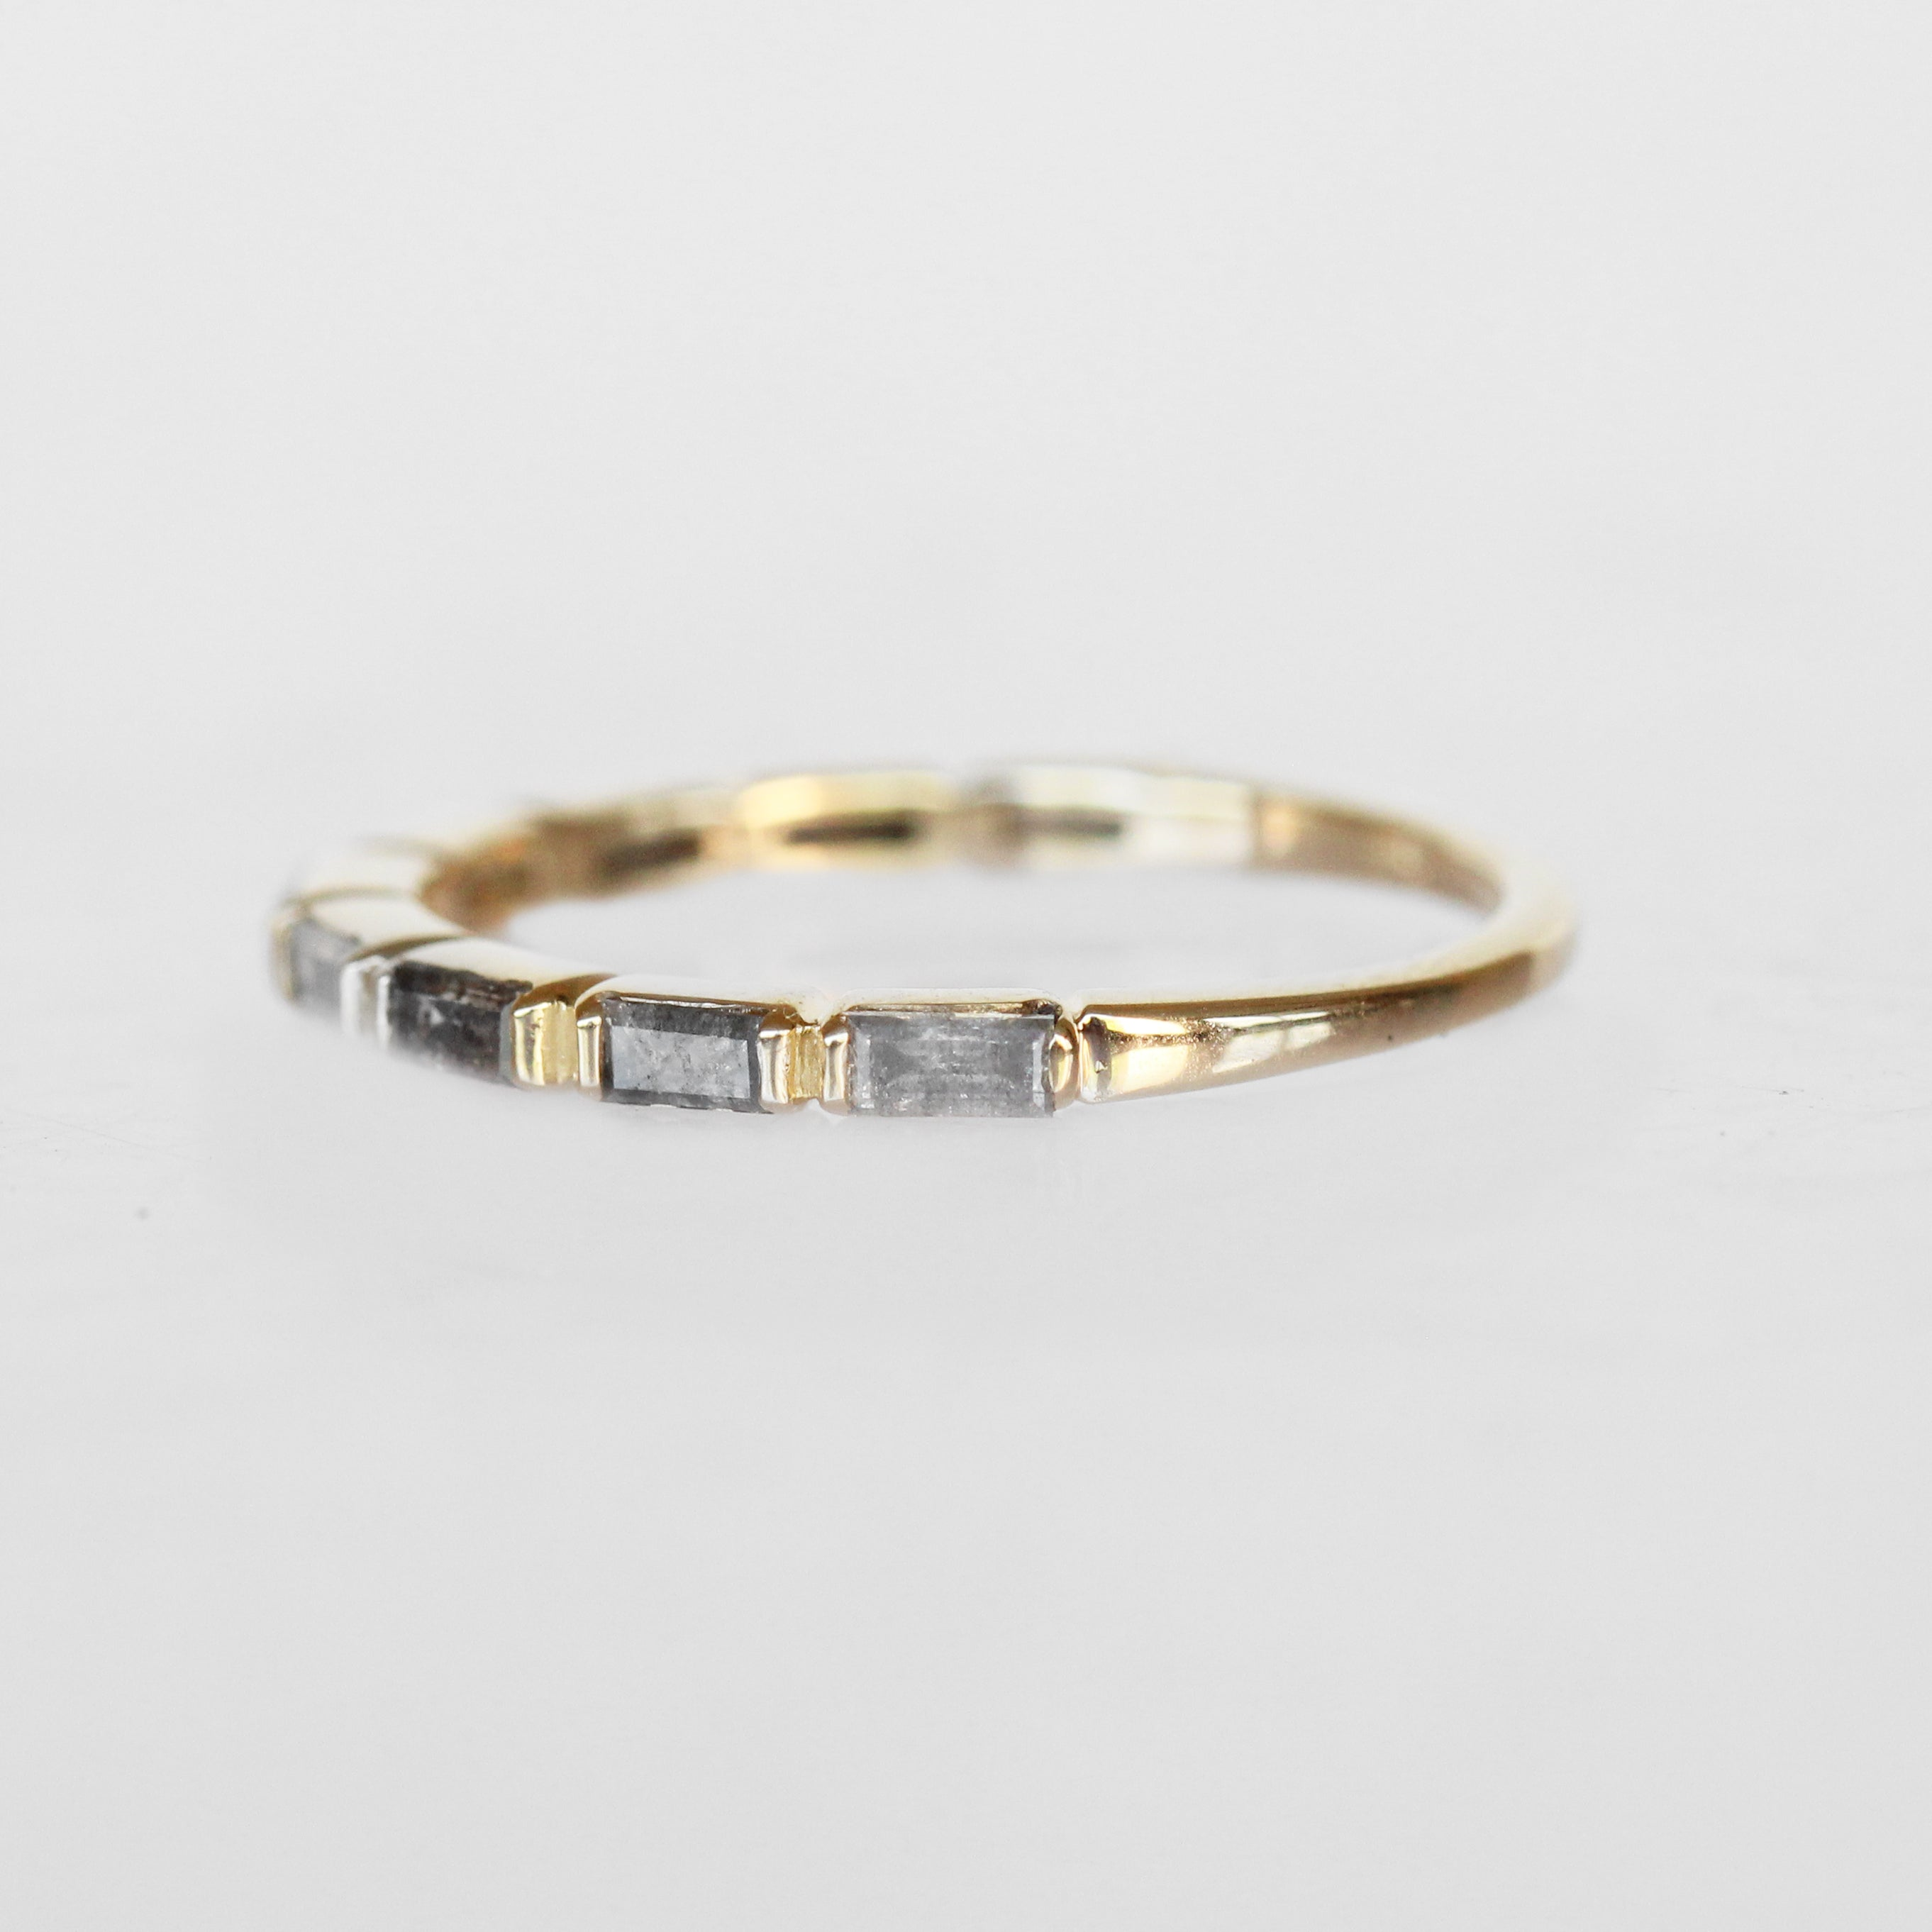 Bronte - Baguette Gray Celestial Diamond Band - Celestial Diamonds ® by Midwinter Co.